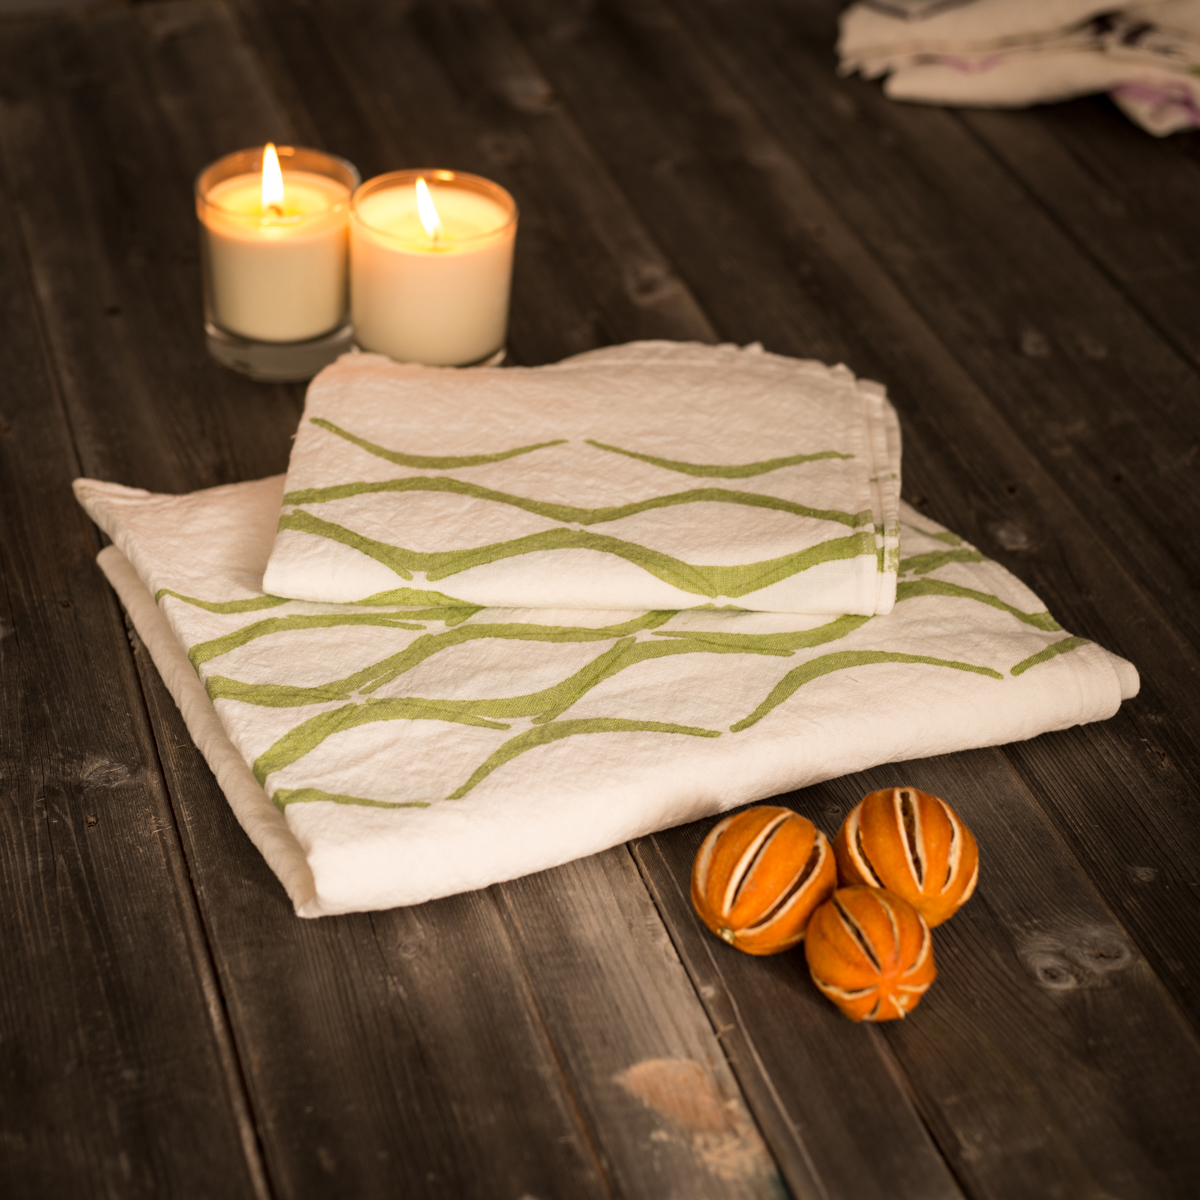 allorashop Italian linen bath towel by Bertozzi